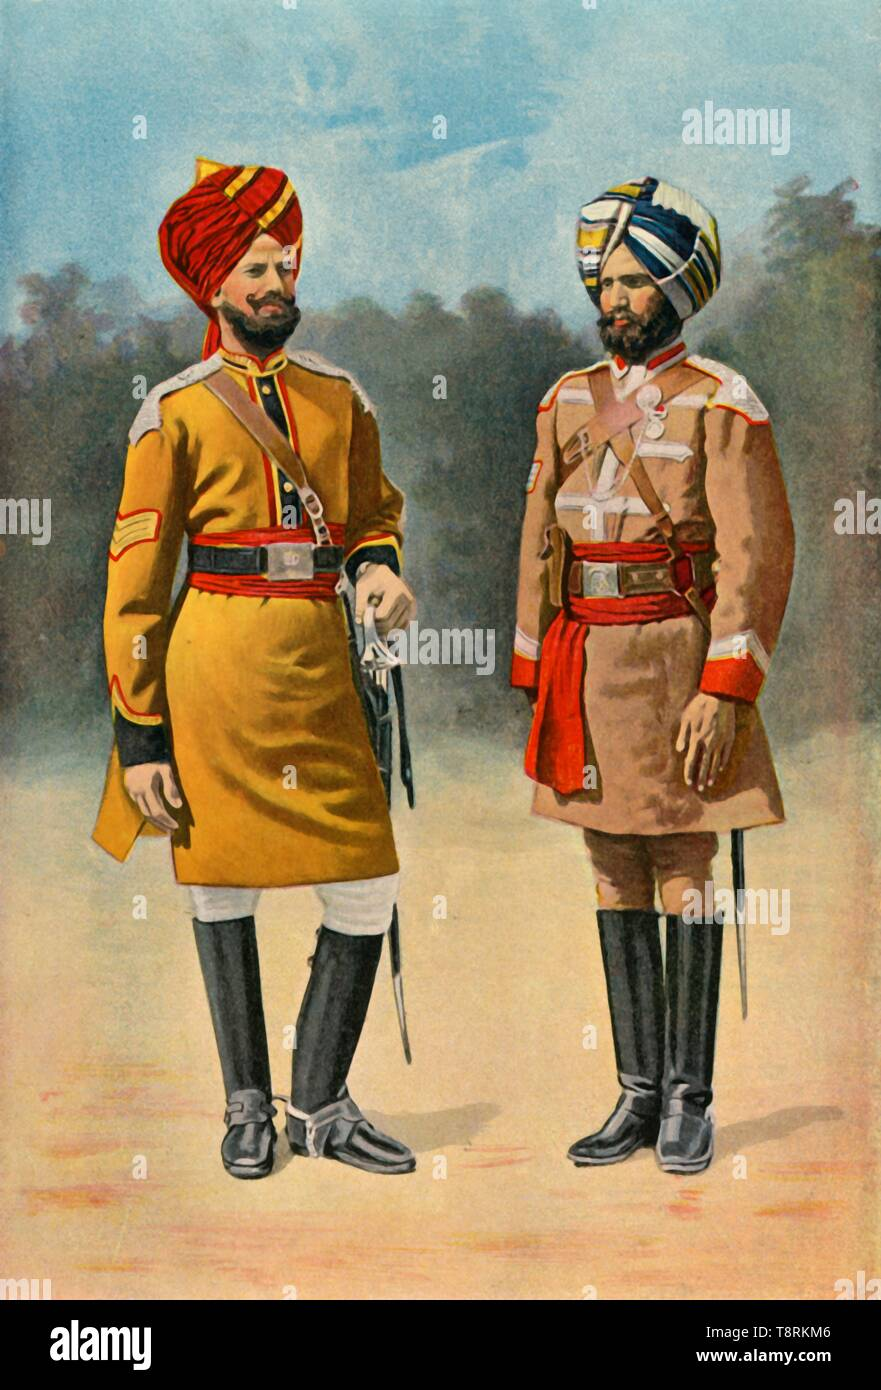 """'First Bengal Cavalry and Guide Cavalry', 1901. Indian soldiers during the period of the British Raj. From """"The Life and Deeds of Earl Roberts, Vol. I. - To The End of the Indian Mutiny"""", by J. Maclaren Cobban. [T. C. & E. C. Jack, Edinburgh, 1901] - Stock Image"""